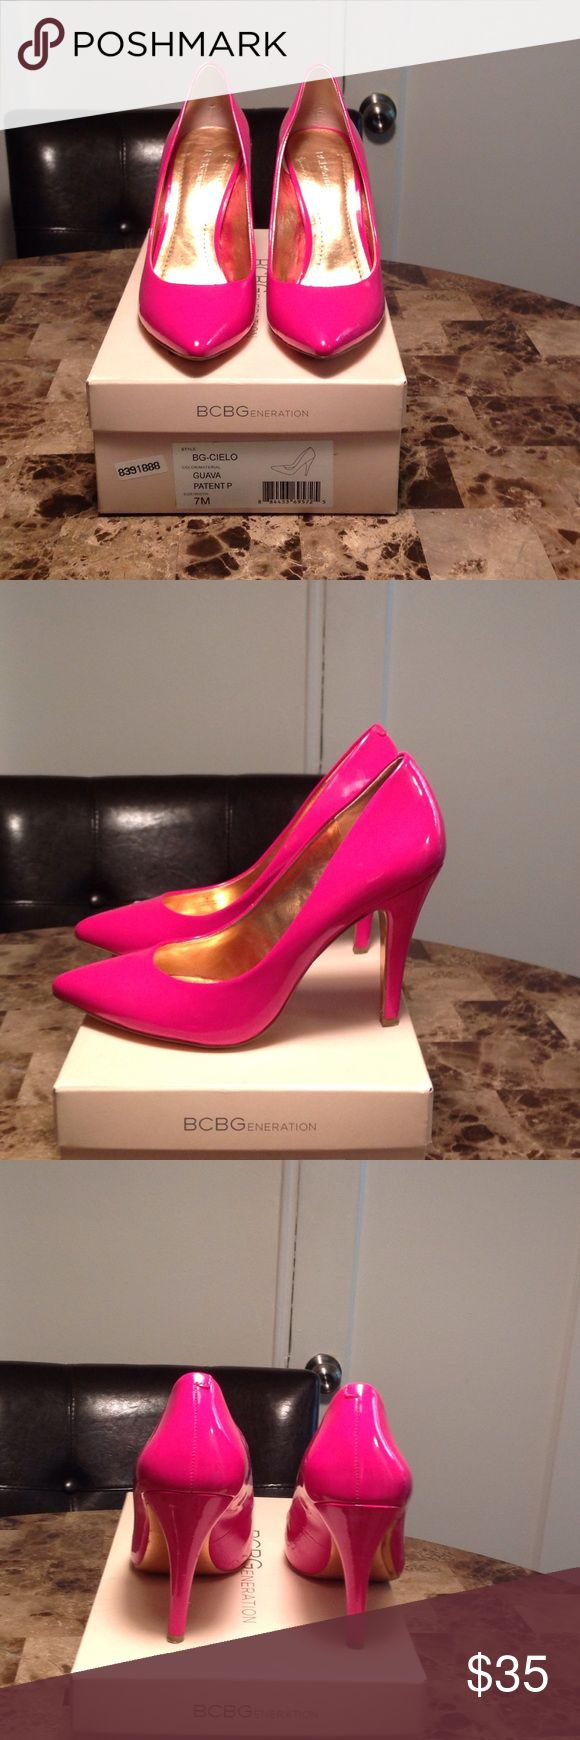 BCBG Hot Pink Pumps 👠 BCBGeneration Hot Pink (Guava) color heeled pumps. Size 7M. Heel is 4 inches high. Comes with original box. Tiny damage on one heel - see photos. BCBGeneration Shoes Heels